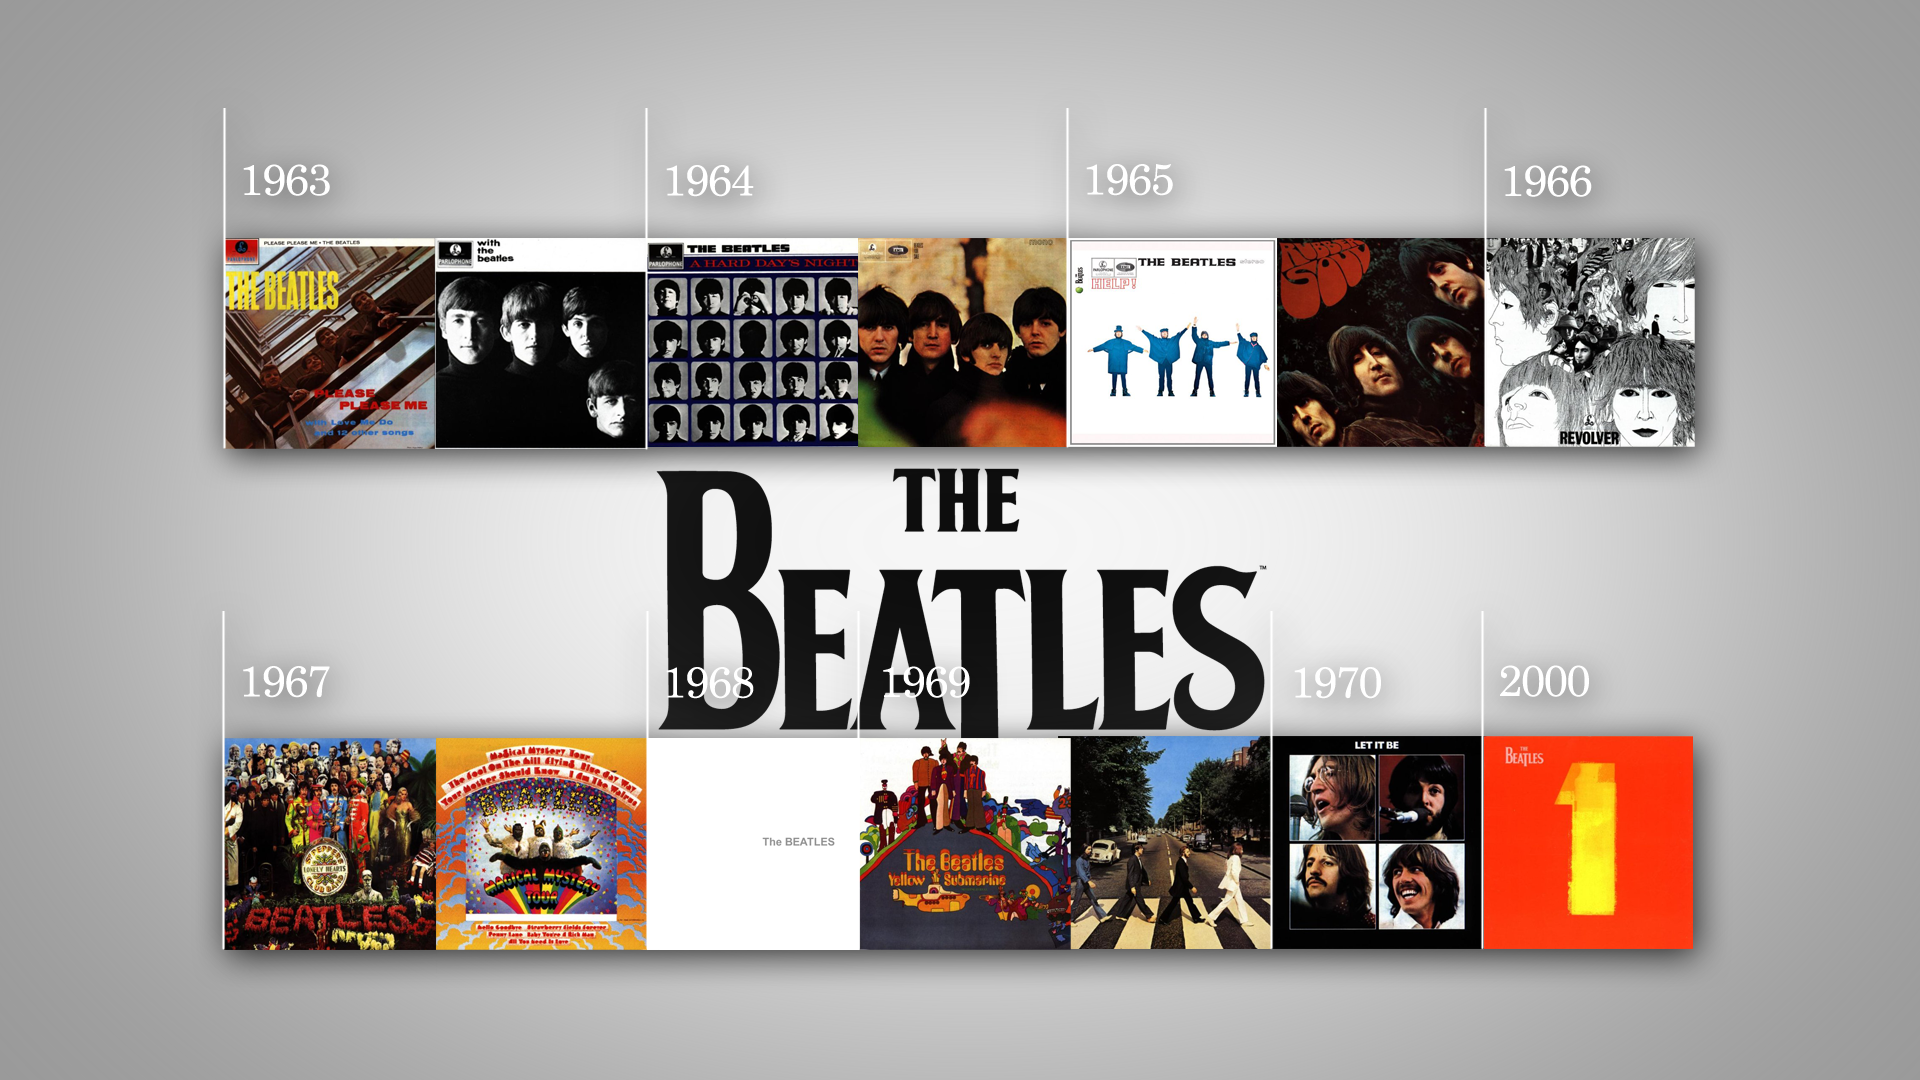 The beatles free download